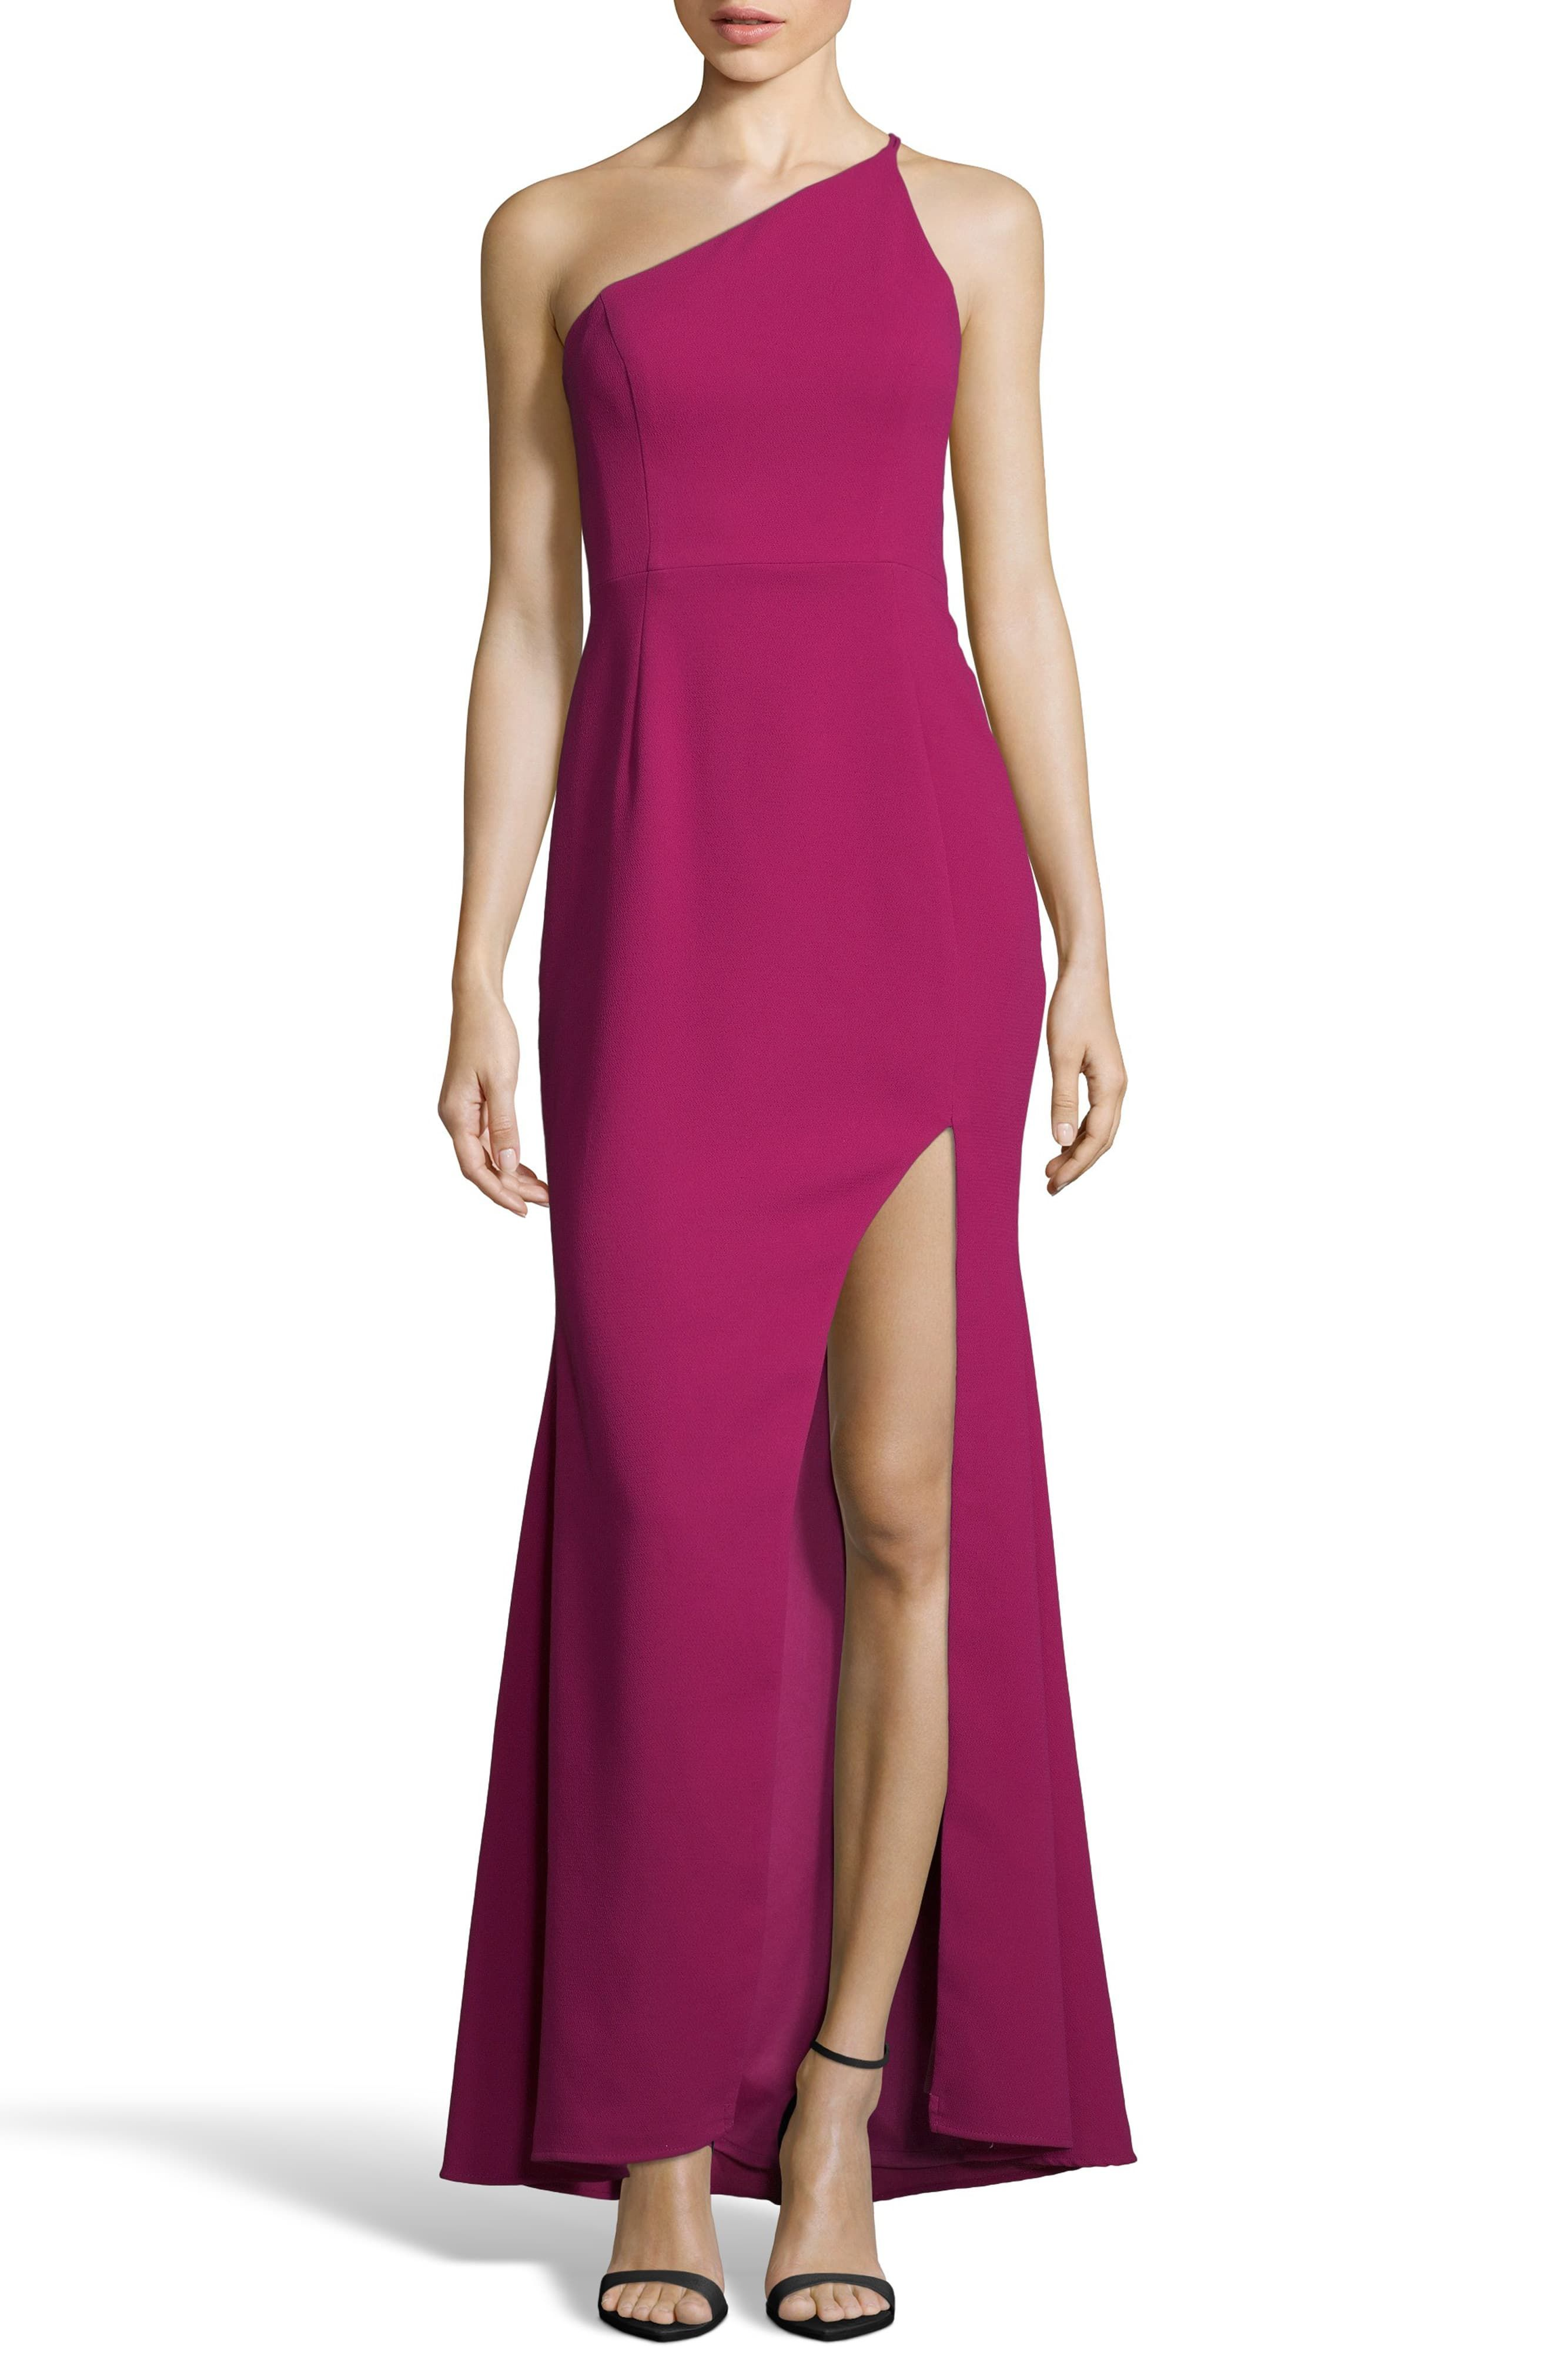 0cd58884e045 Xscape Evenings One-Shoulder Crepe Evening Dress in 2019 | Products ...